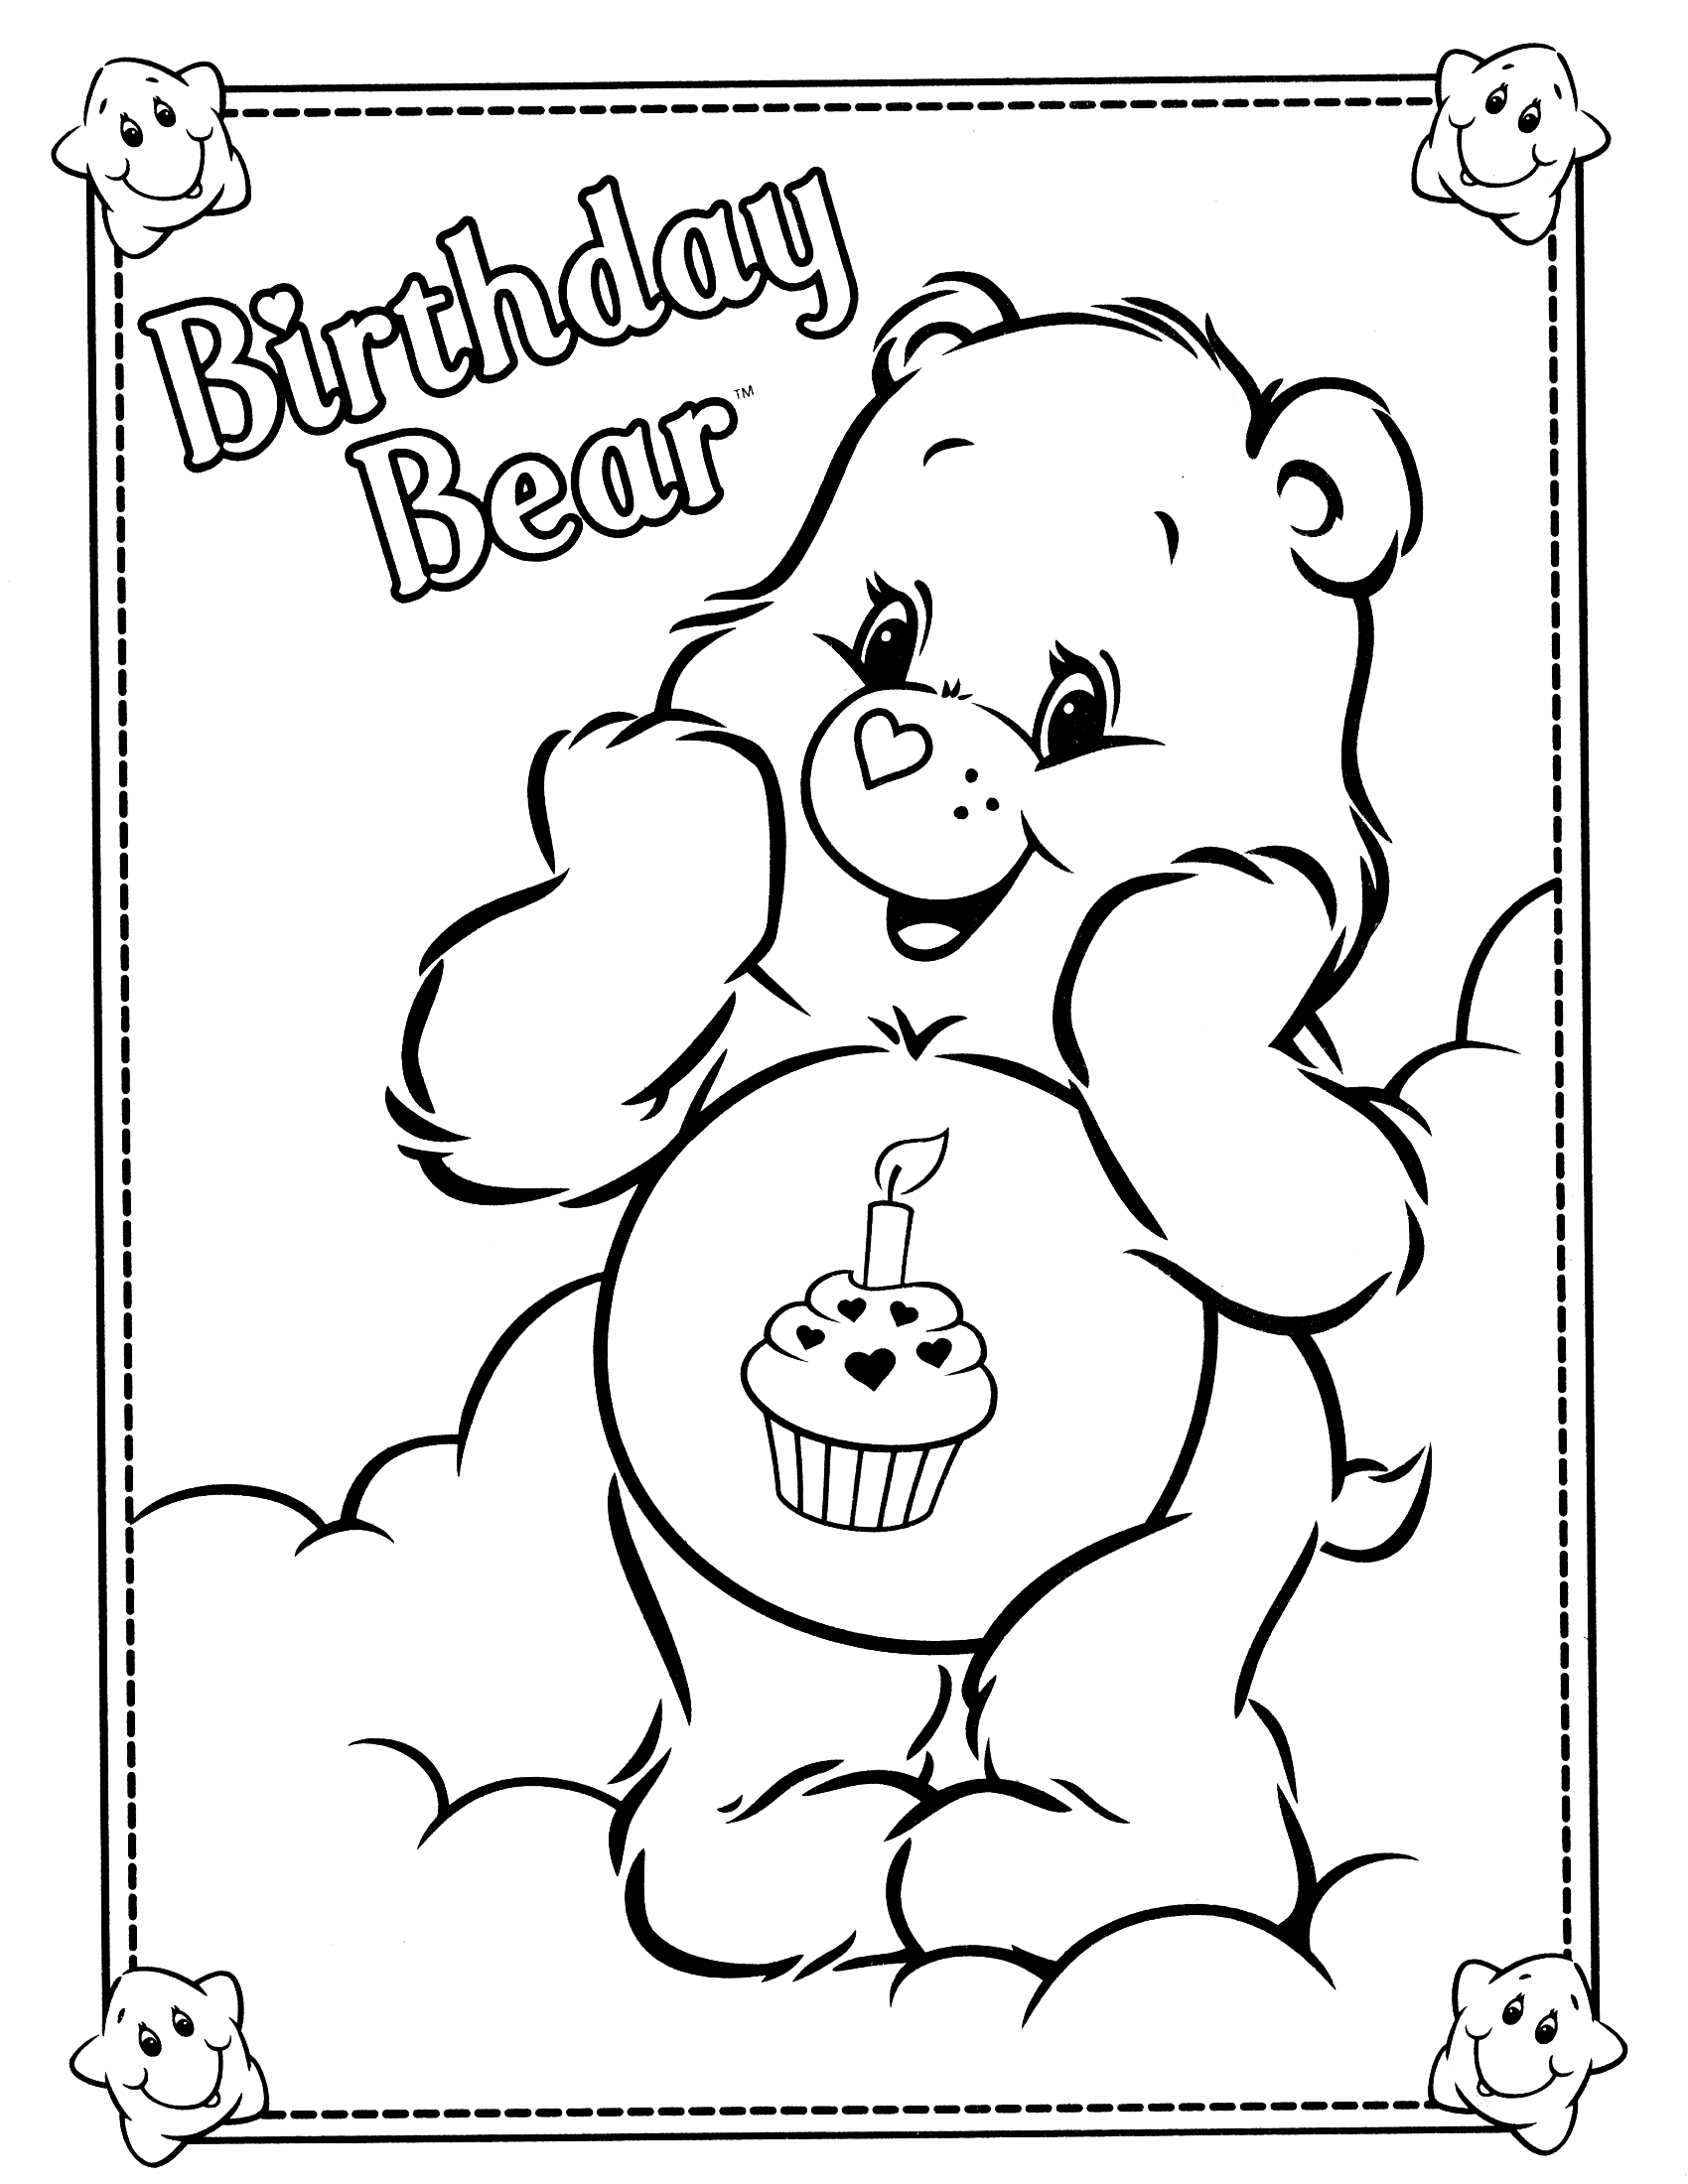 littlecare bear coloring pages - photo#11